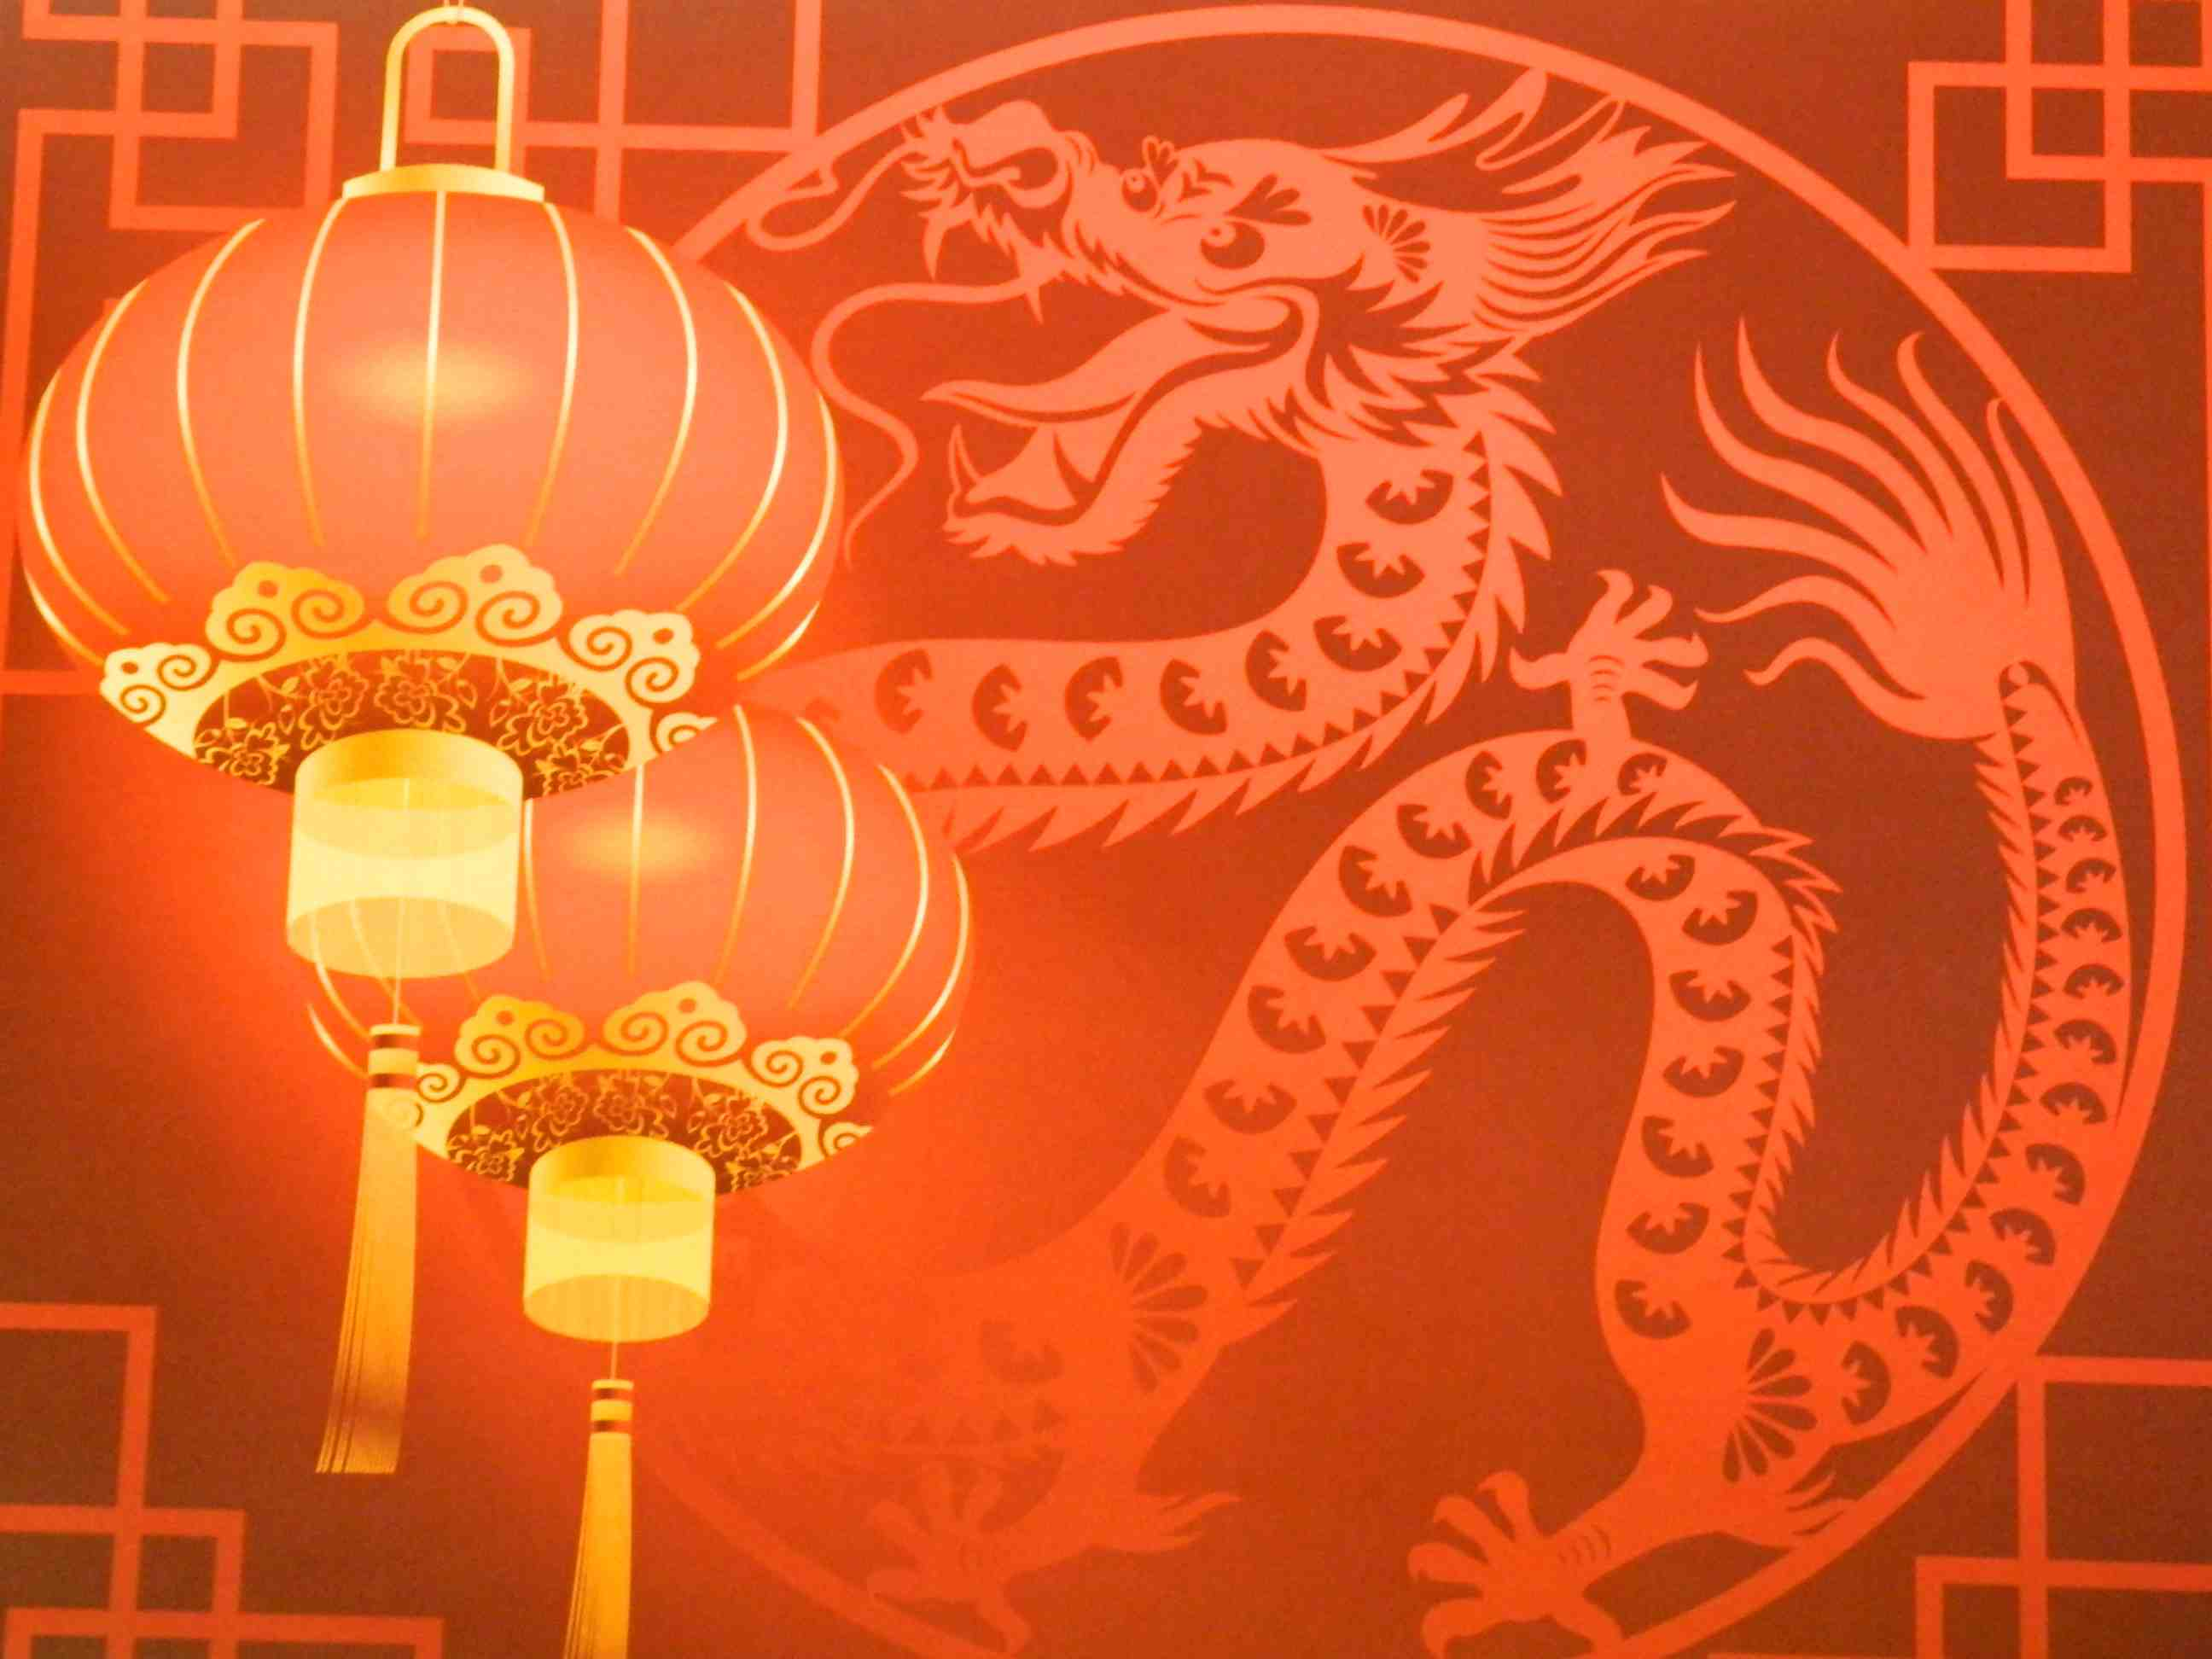 Mardi Gras Wallpaper For Iphone Chinese New Year Victoria Conservatory Of Music